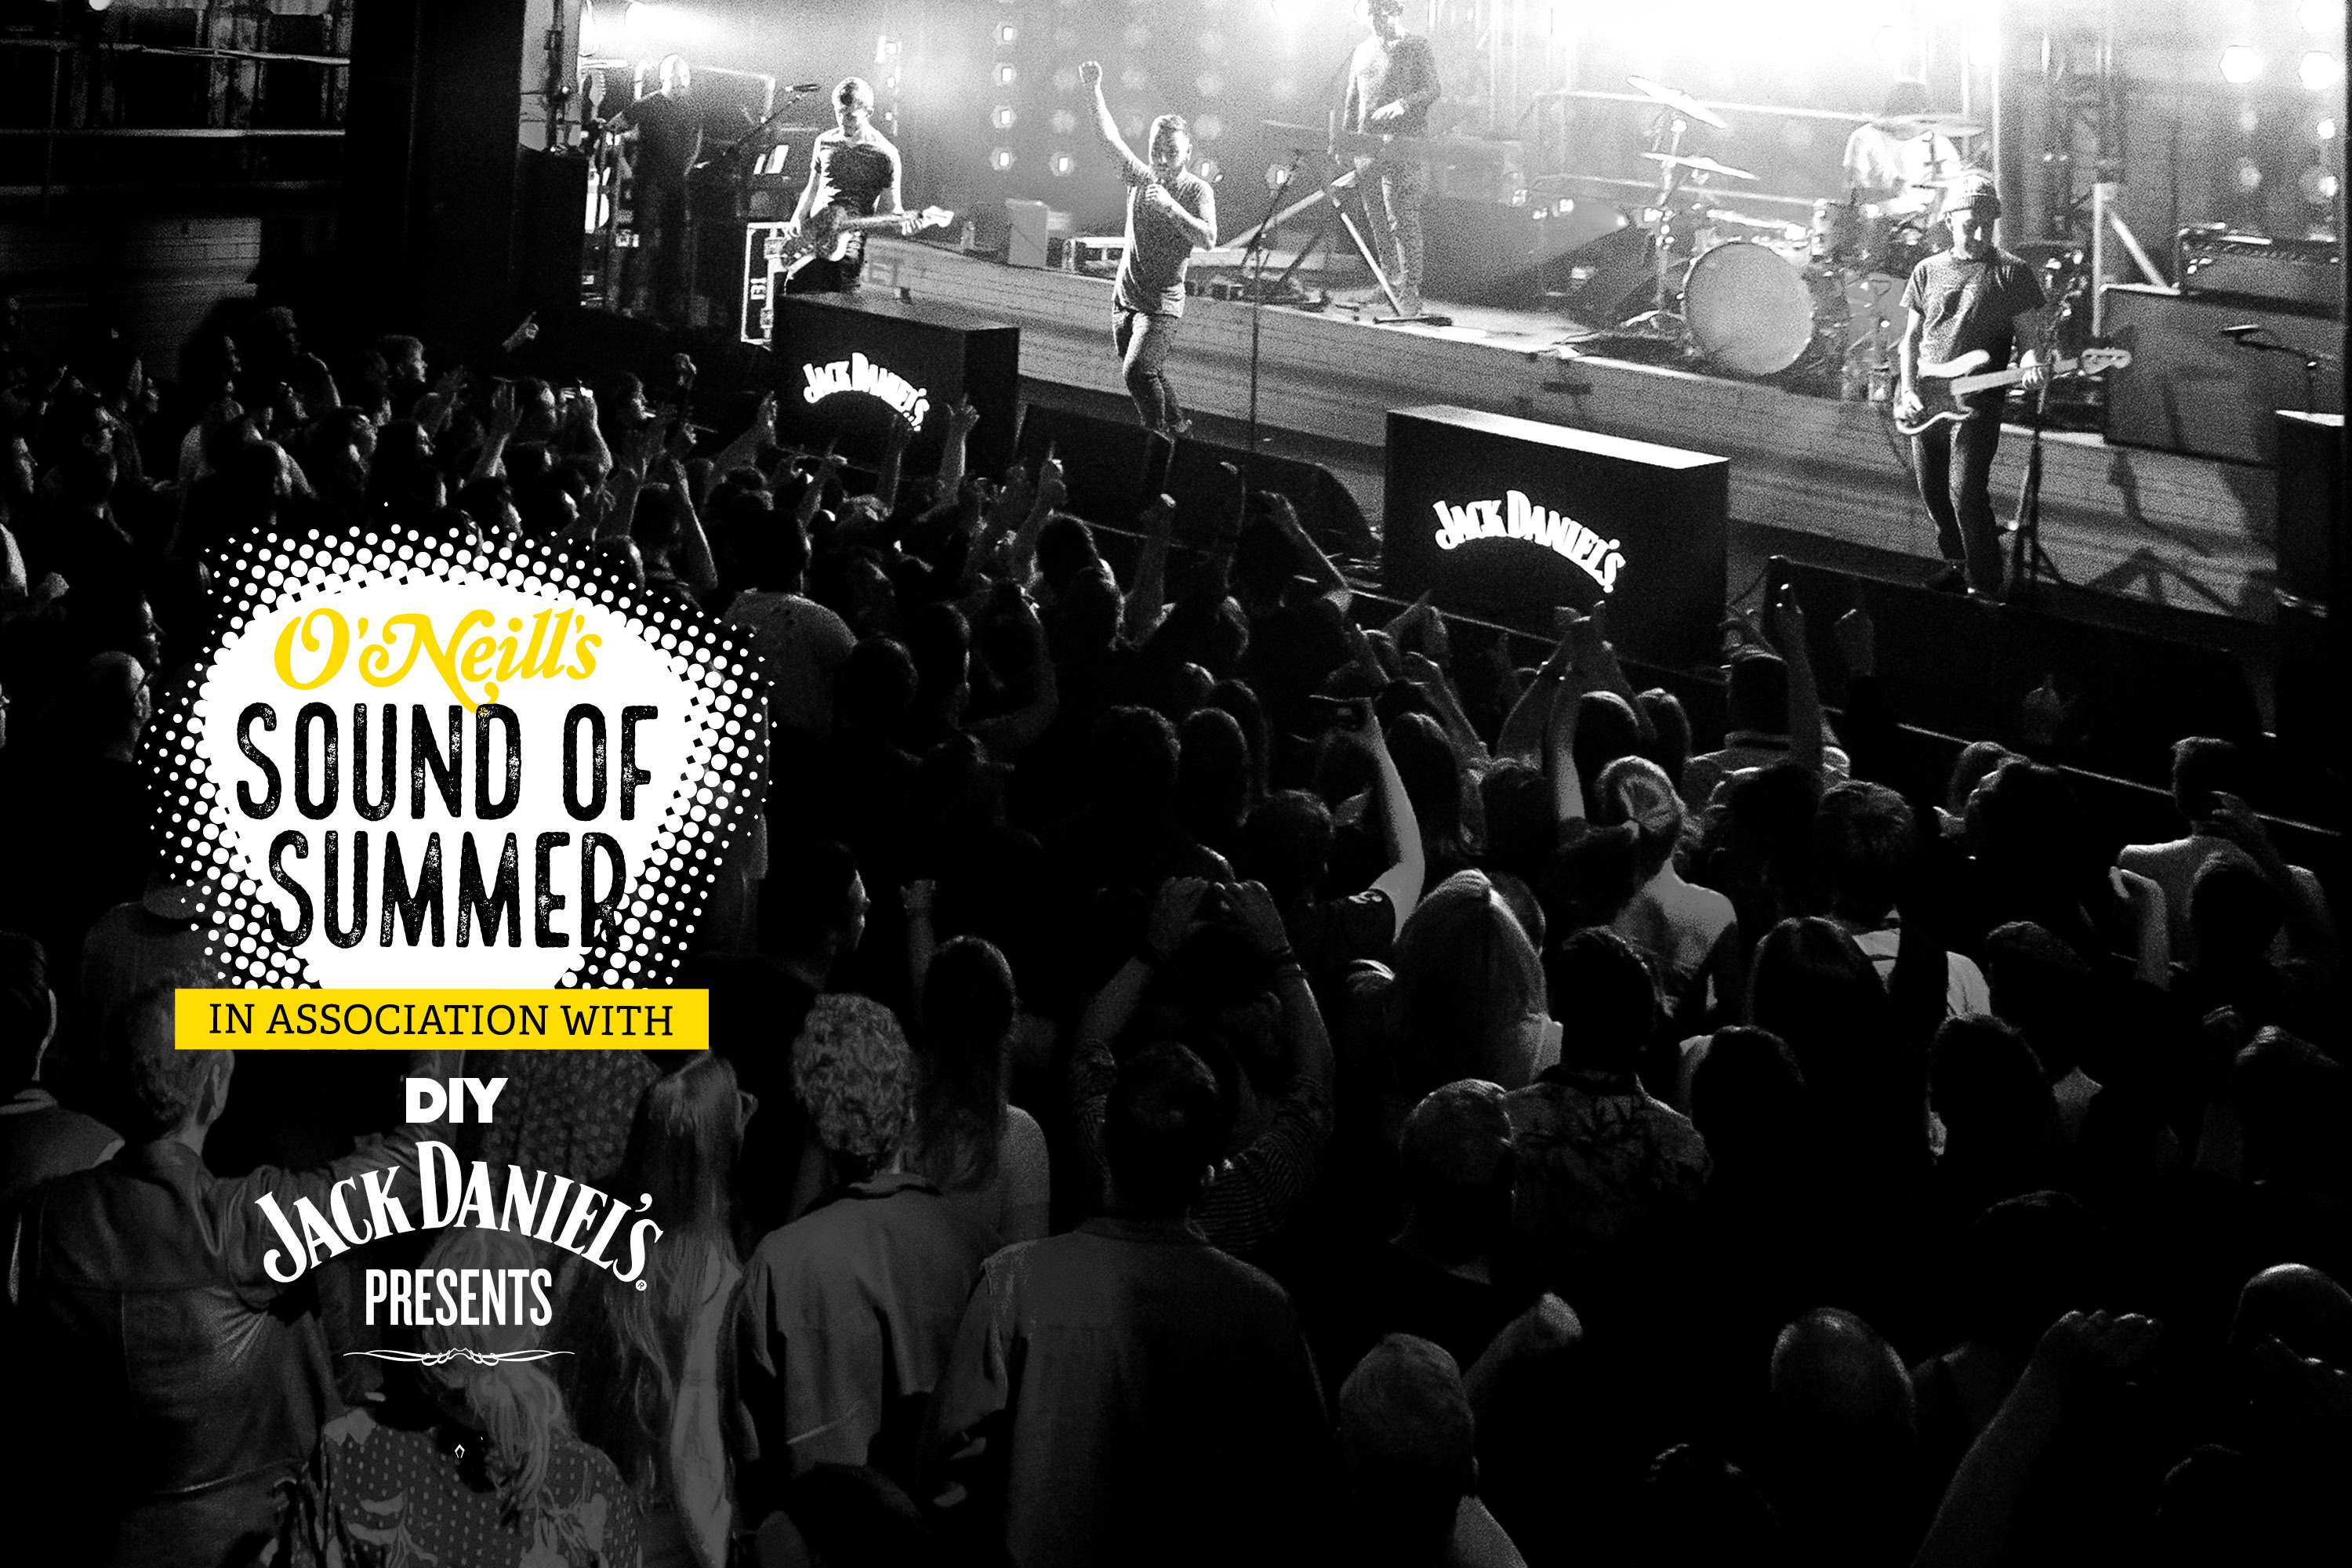 Win the chance to play at 2019's edition of Jack Daniel's Presents' with the Sound of Summer